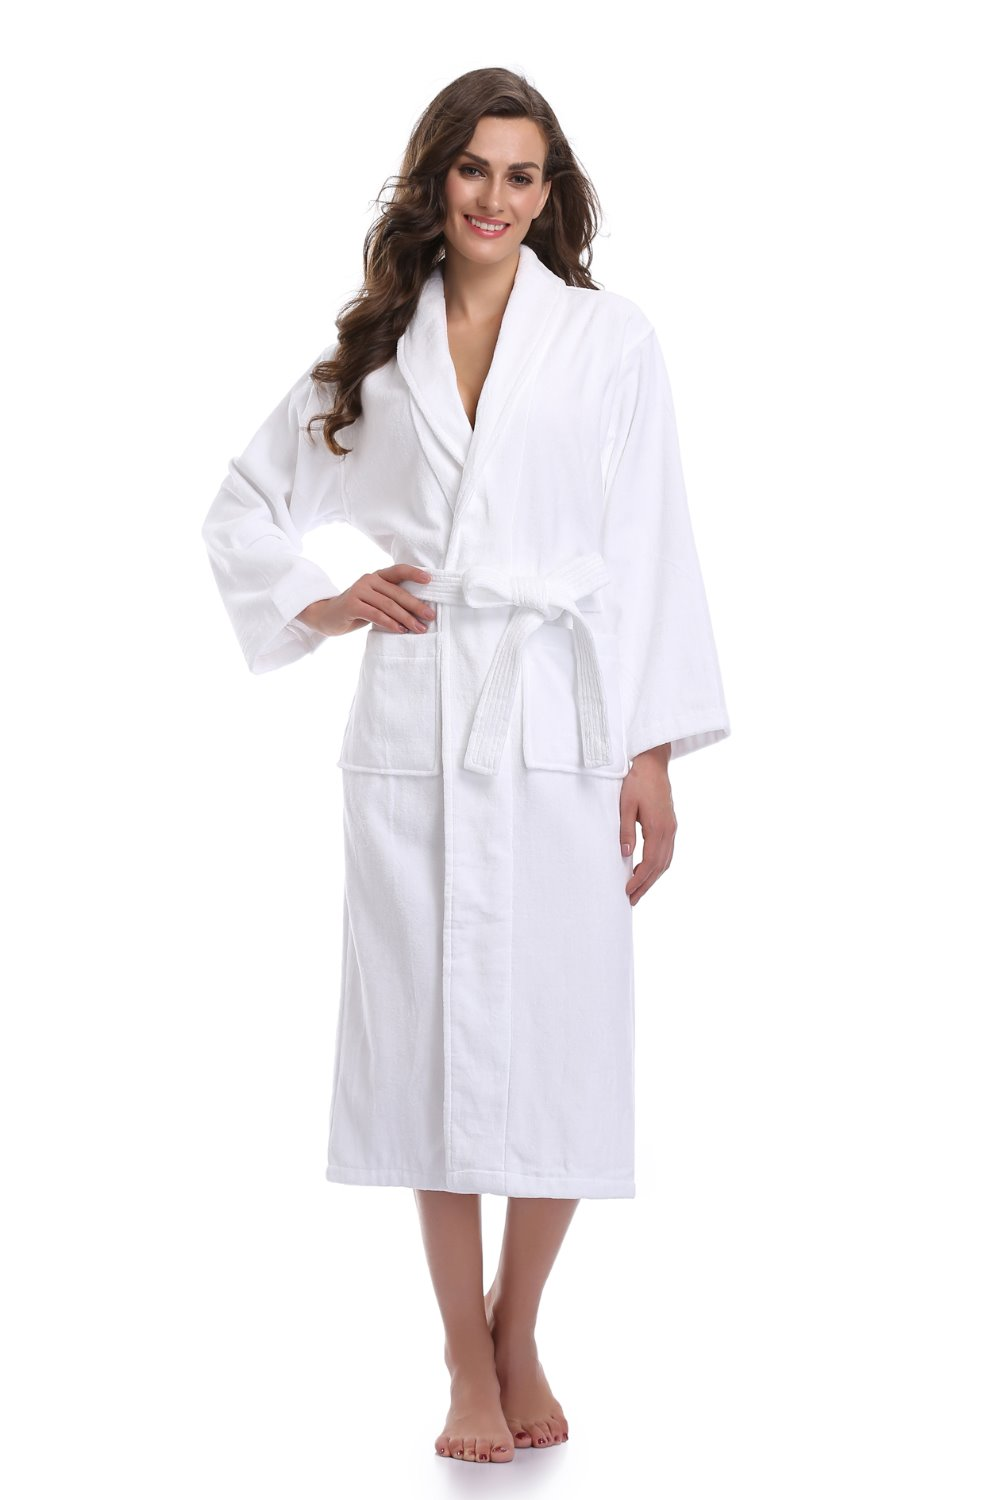 Colorfulkoala Robe Womens 100% Turkish Terry Cotton Bath Robe Long Plush Robes White Bathobe ...